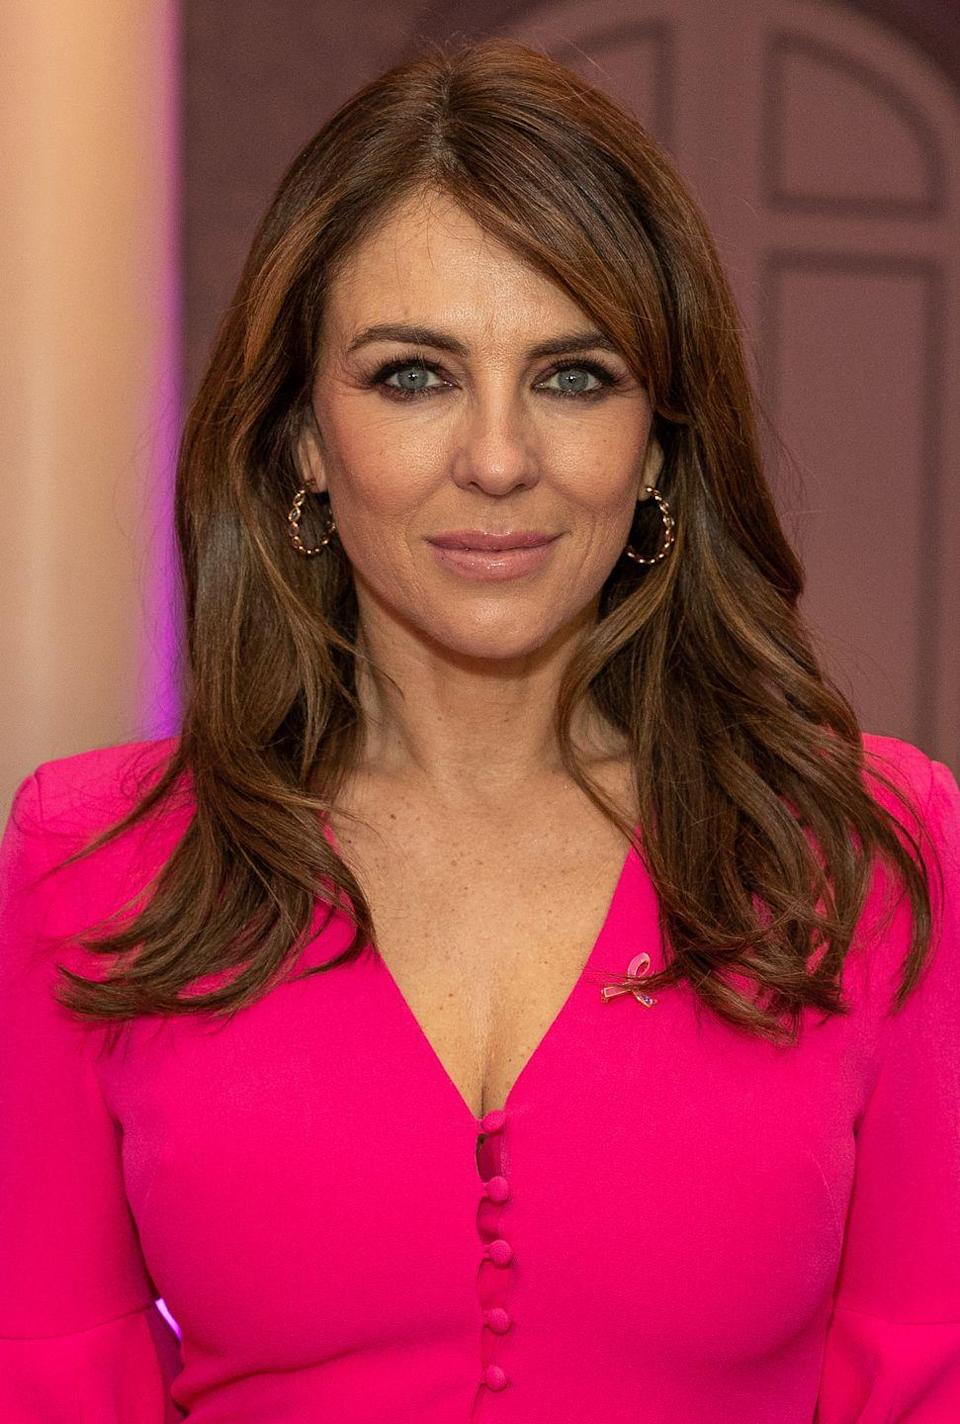 """<p>Elizabeth's diet is filled with organic produce and protein. Her go-tos include Greek yogurt, vegetable soup and grilled chicken with a side of veggies, per <em><a href=""""https://www.womenshealthmag.com/food/a23901010/elizabeth-hurley-workouts-diet-plan/"""" rel=""""nofollow noopener"""" target=""""_blank"""" data-ylk=""""slk:Women's Health."""" class=""""link rapid-noclick-resp"""">Women's Health.</a></em></p>"""